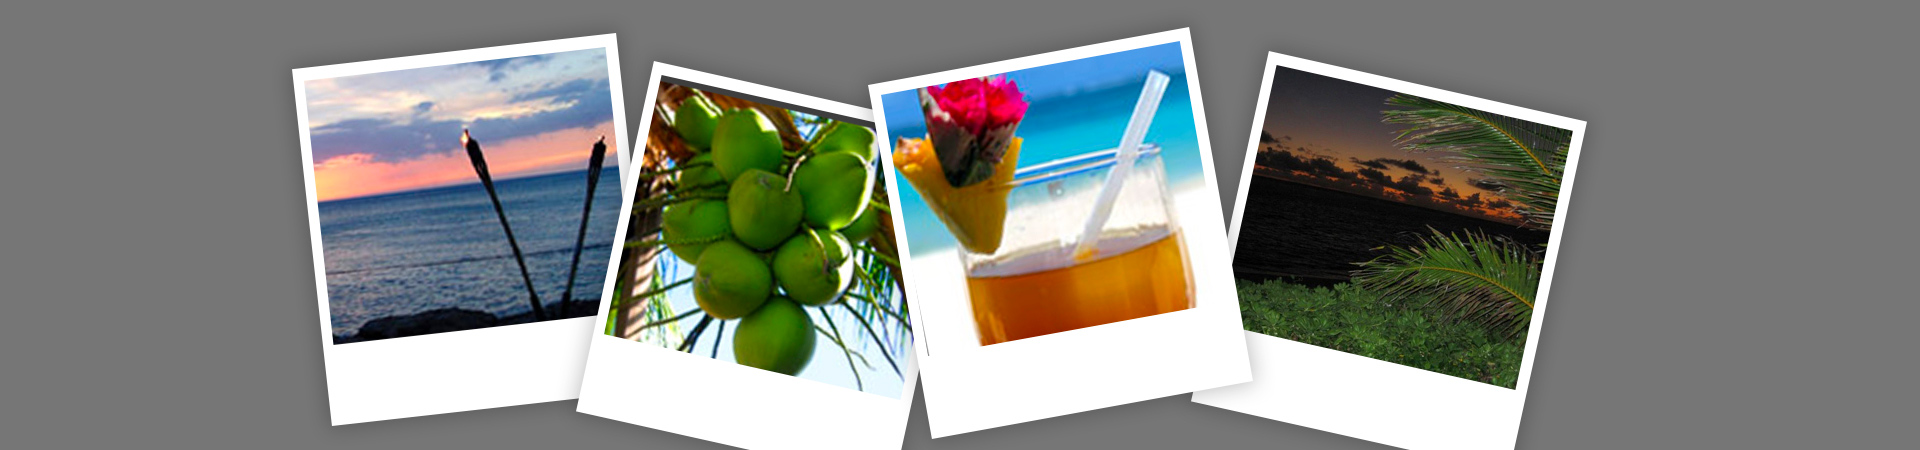 Collage of Sea View, Coconut Tree as well as Mocktail